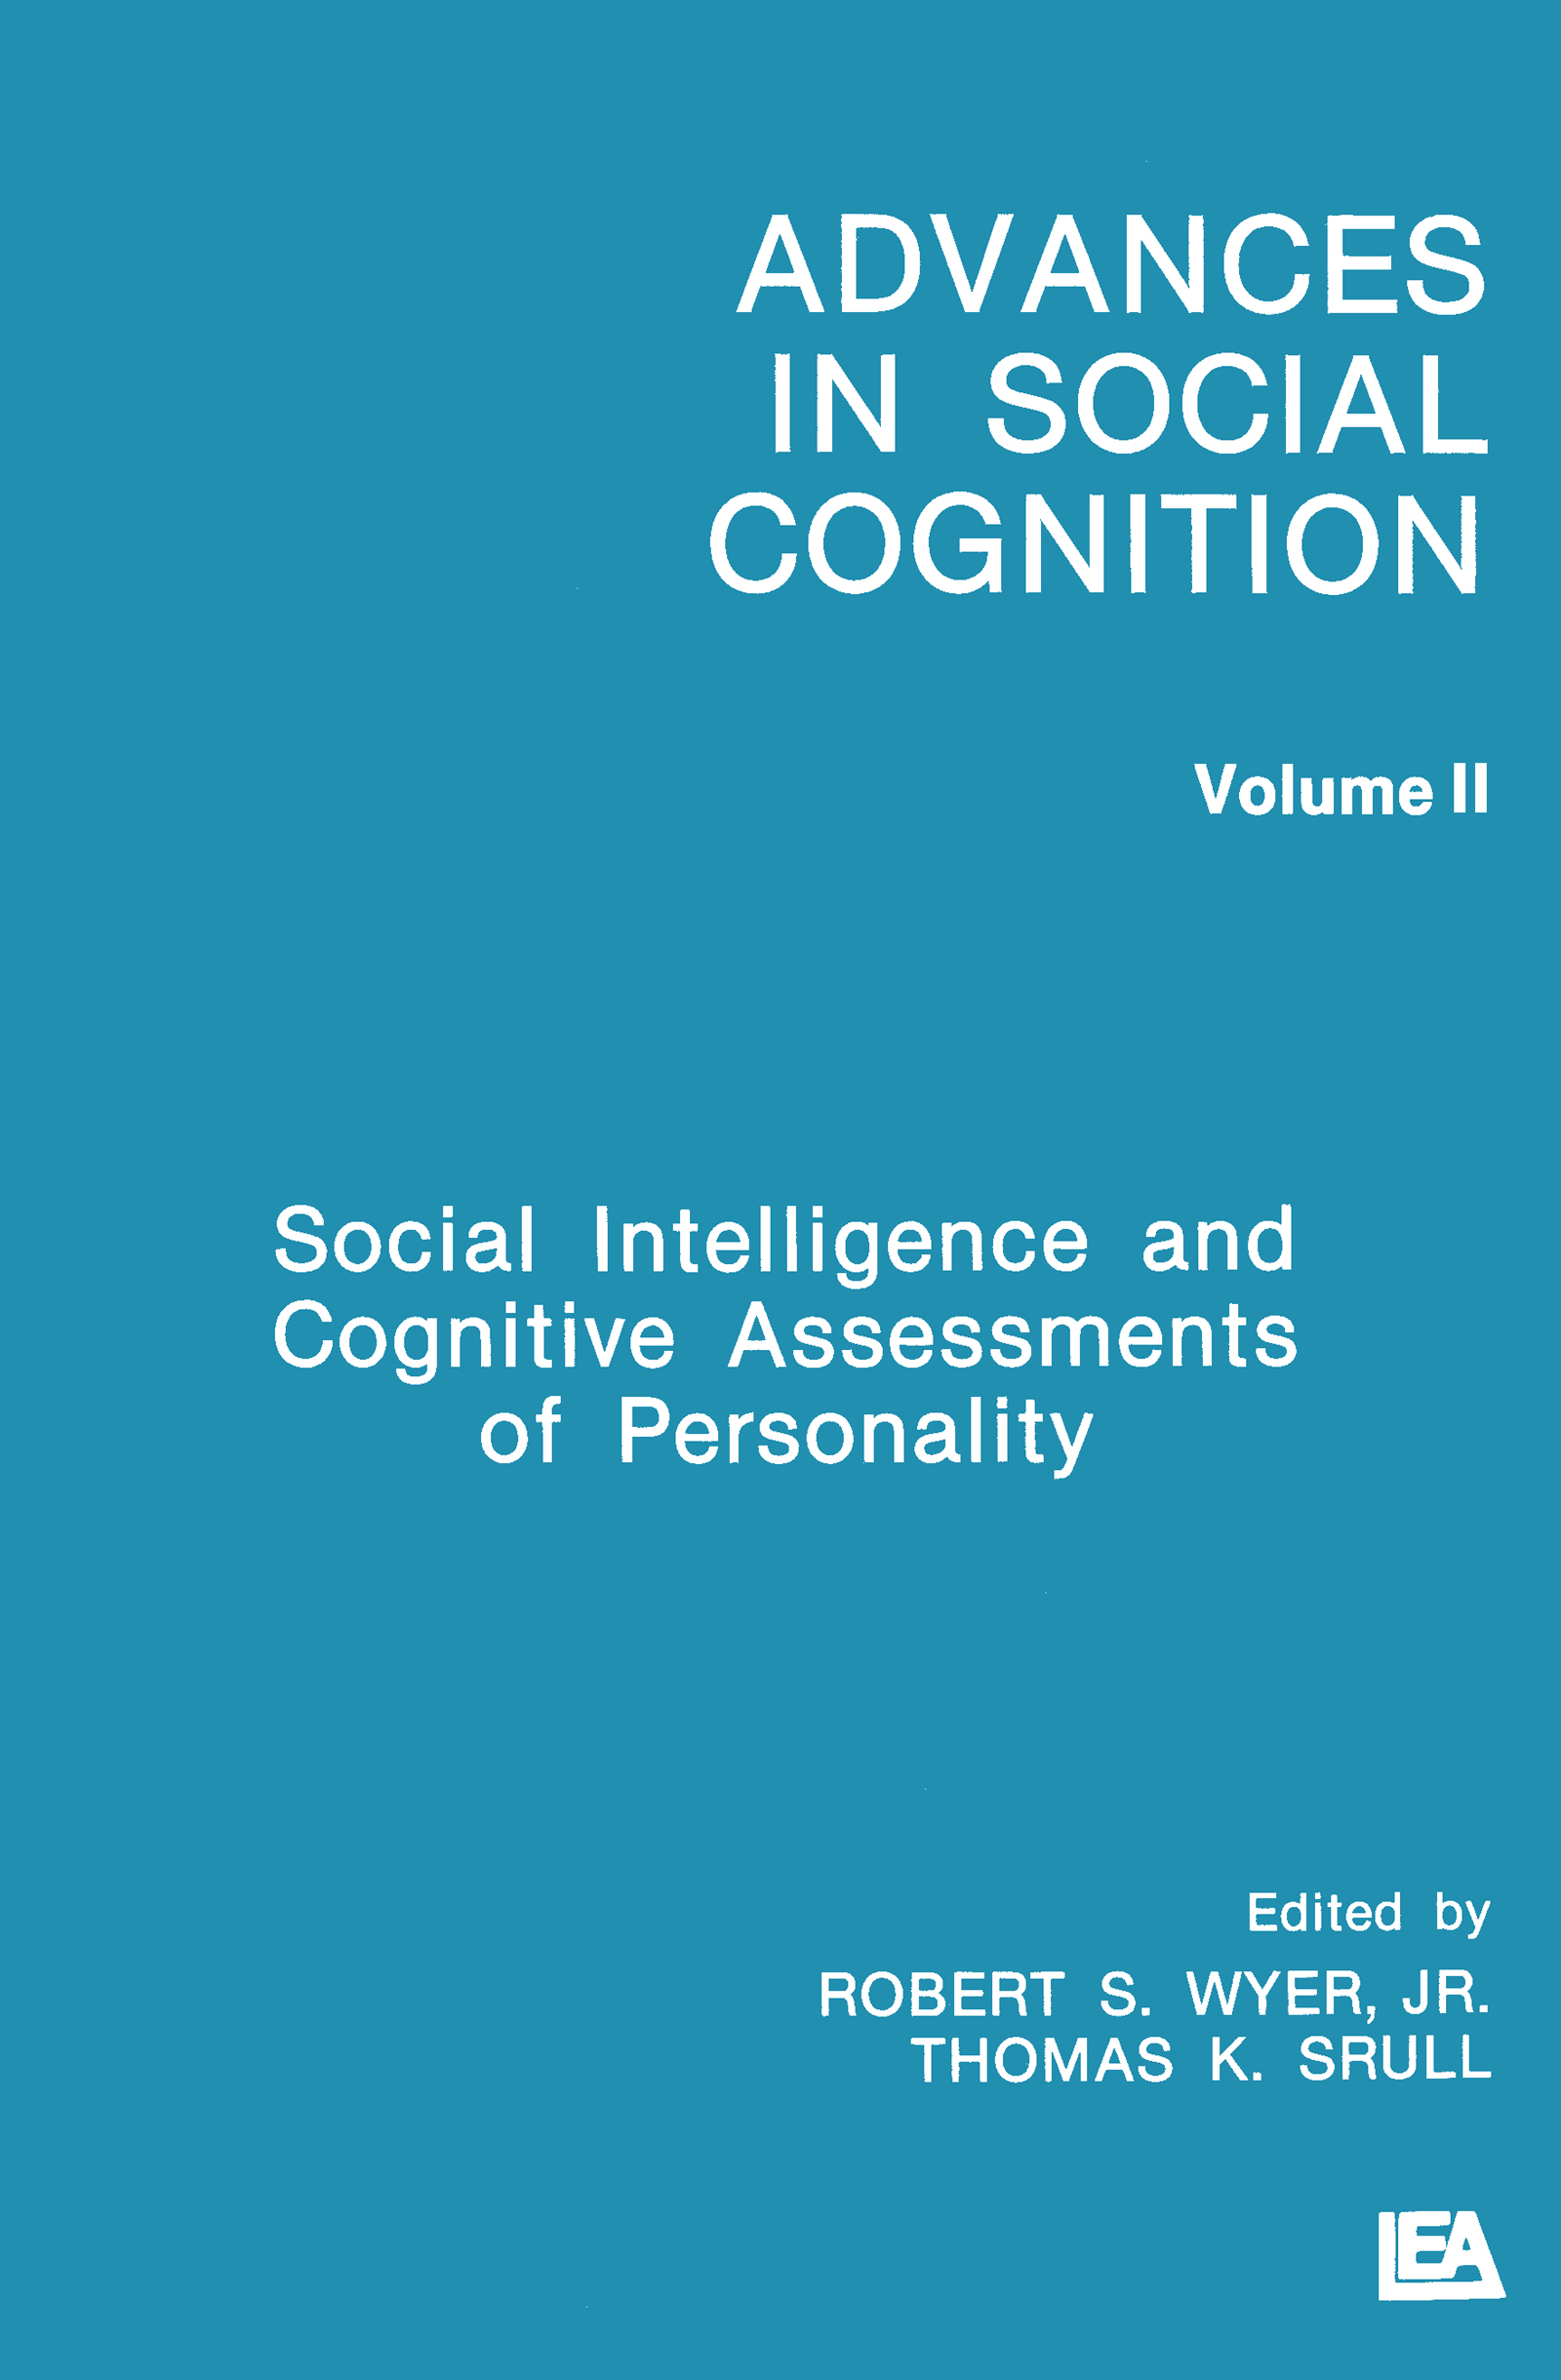 Social Intelligence and Cognitive Assessments of Personality: Advances in Social Cognition, Volume II (Paperback) book cover